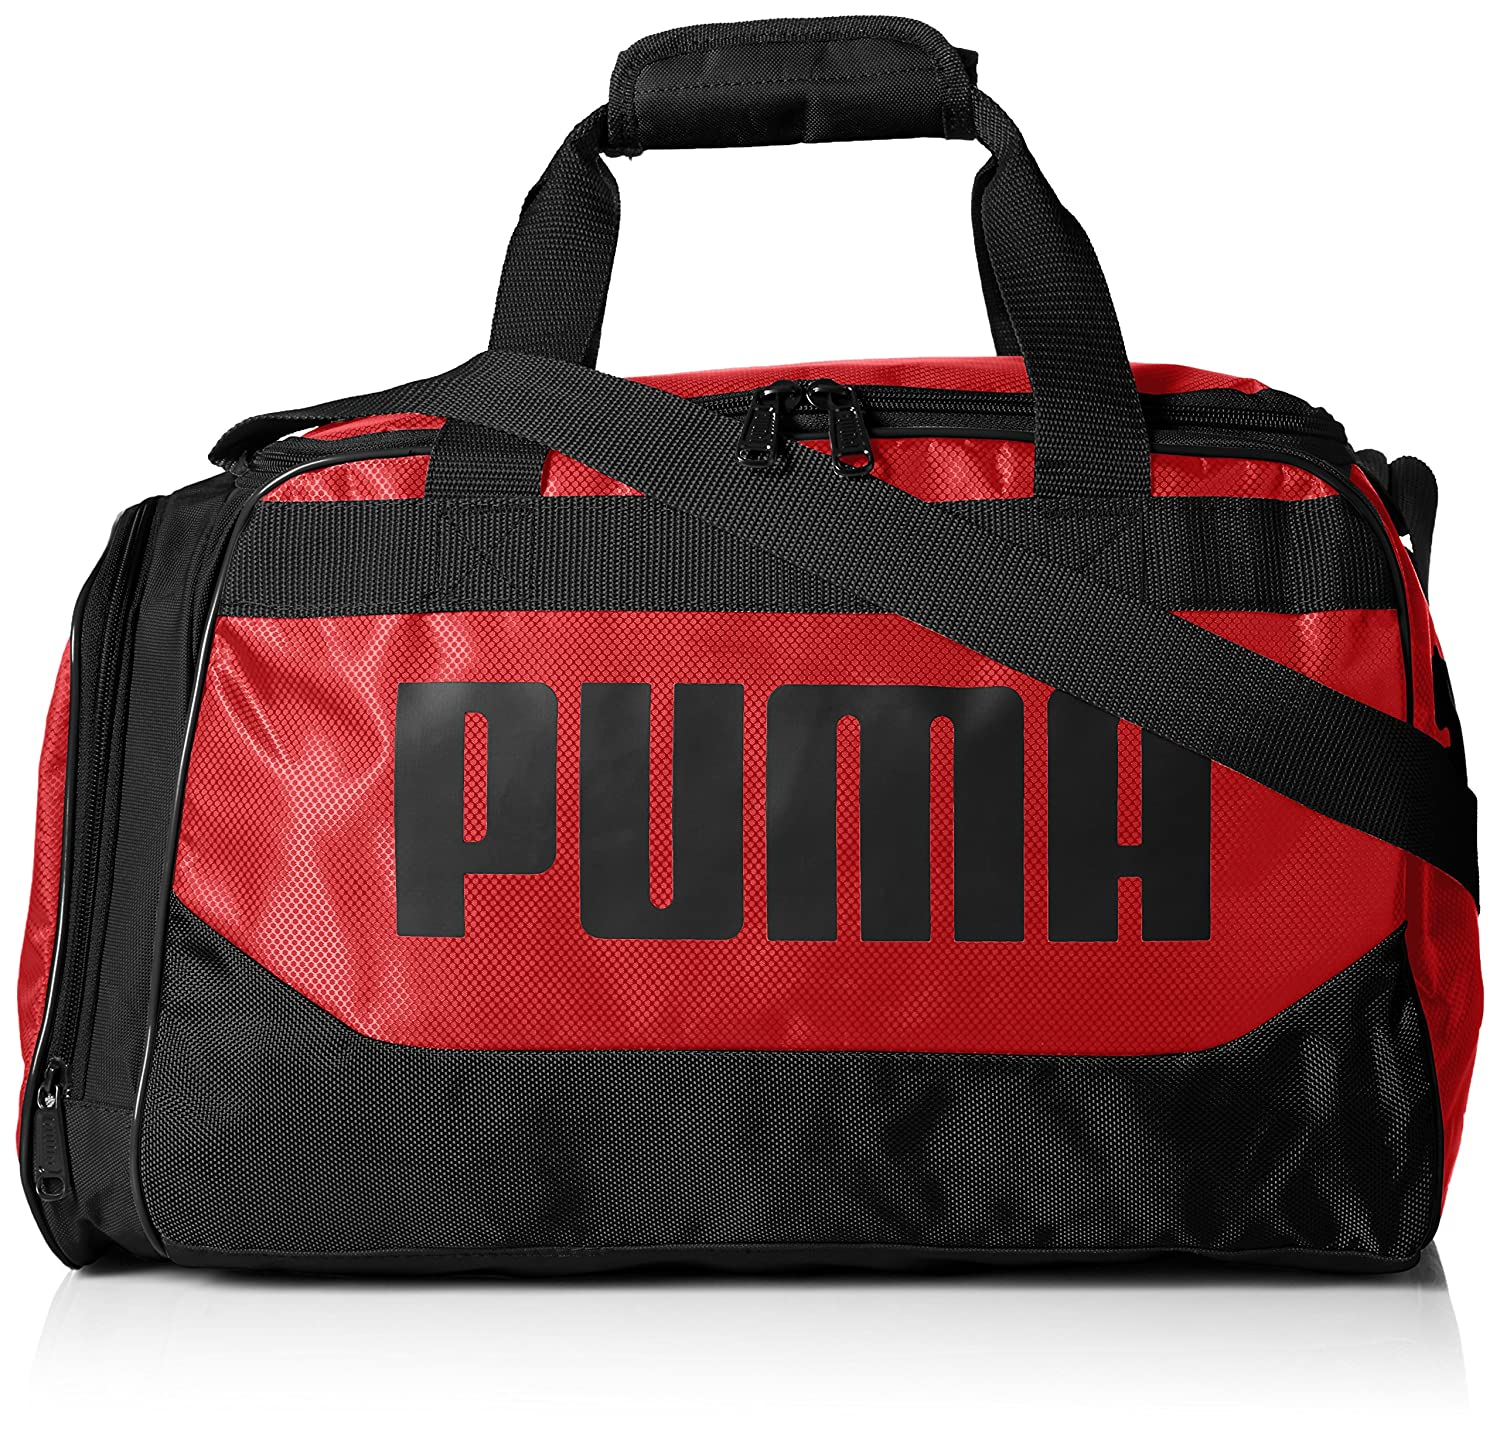 Puma Pink Sports Bag   ReGreen Springfield b1d5bba616